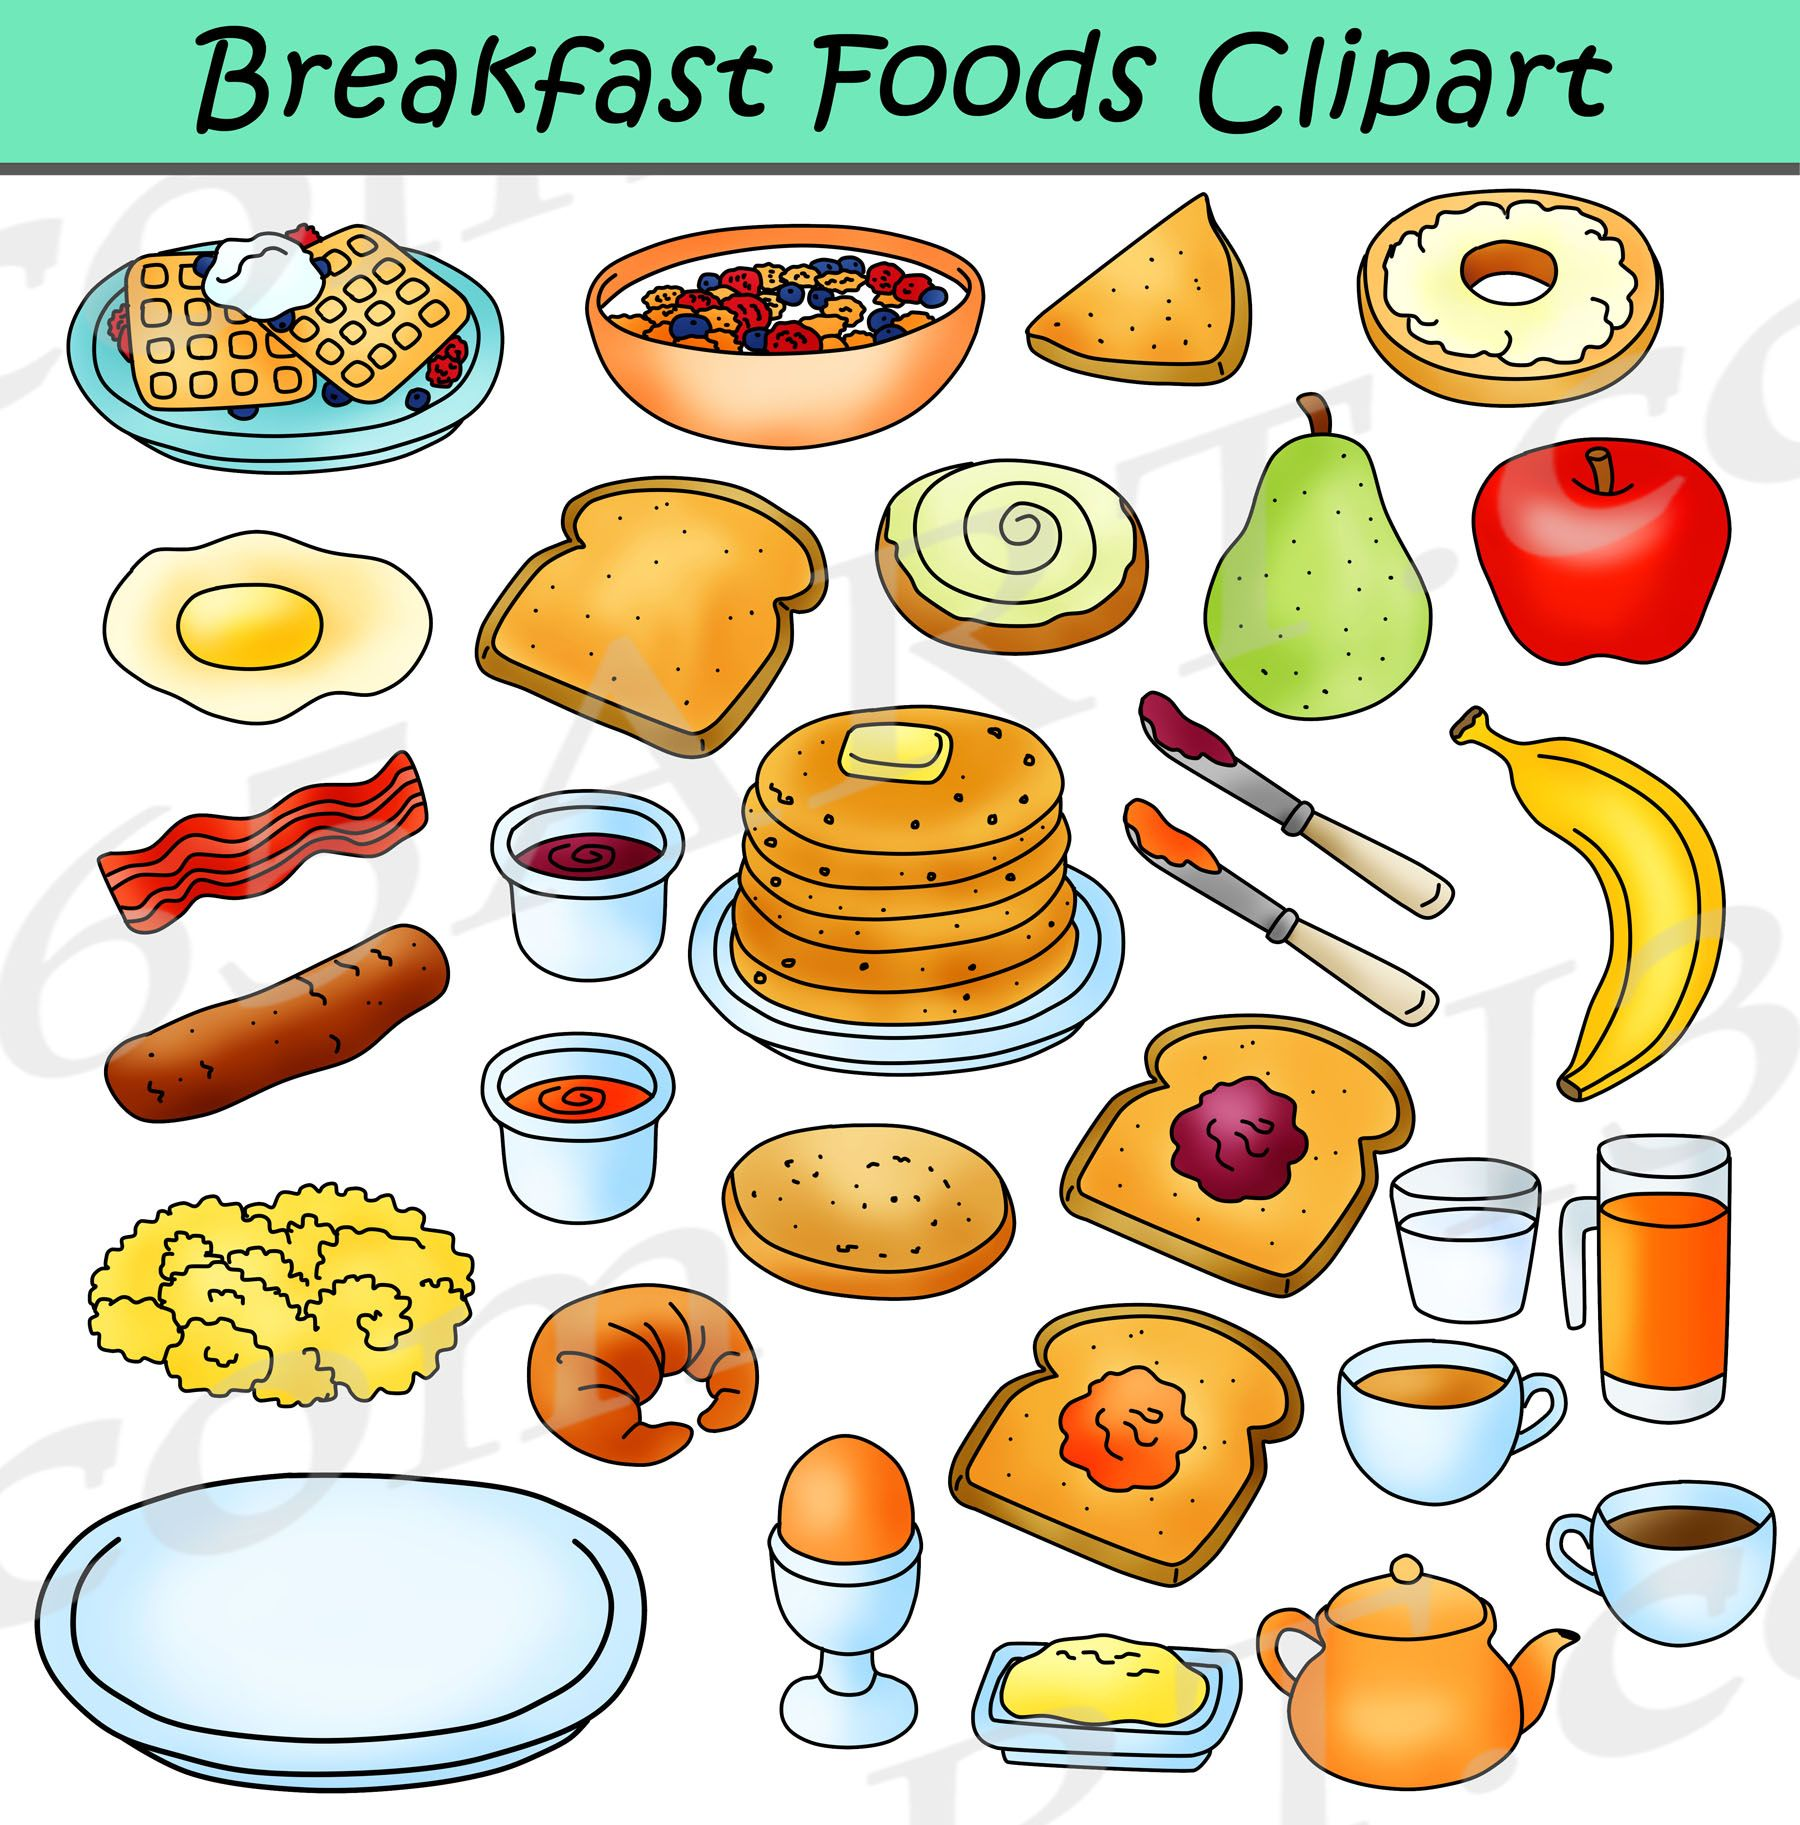 Vip breakfast clipart picture royalty free download Breakfast Foods Clipart Bundle - Breakfast Clipart Graphics ... picture royalty free download